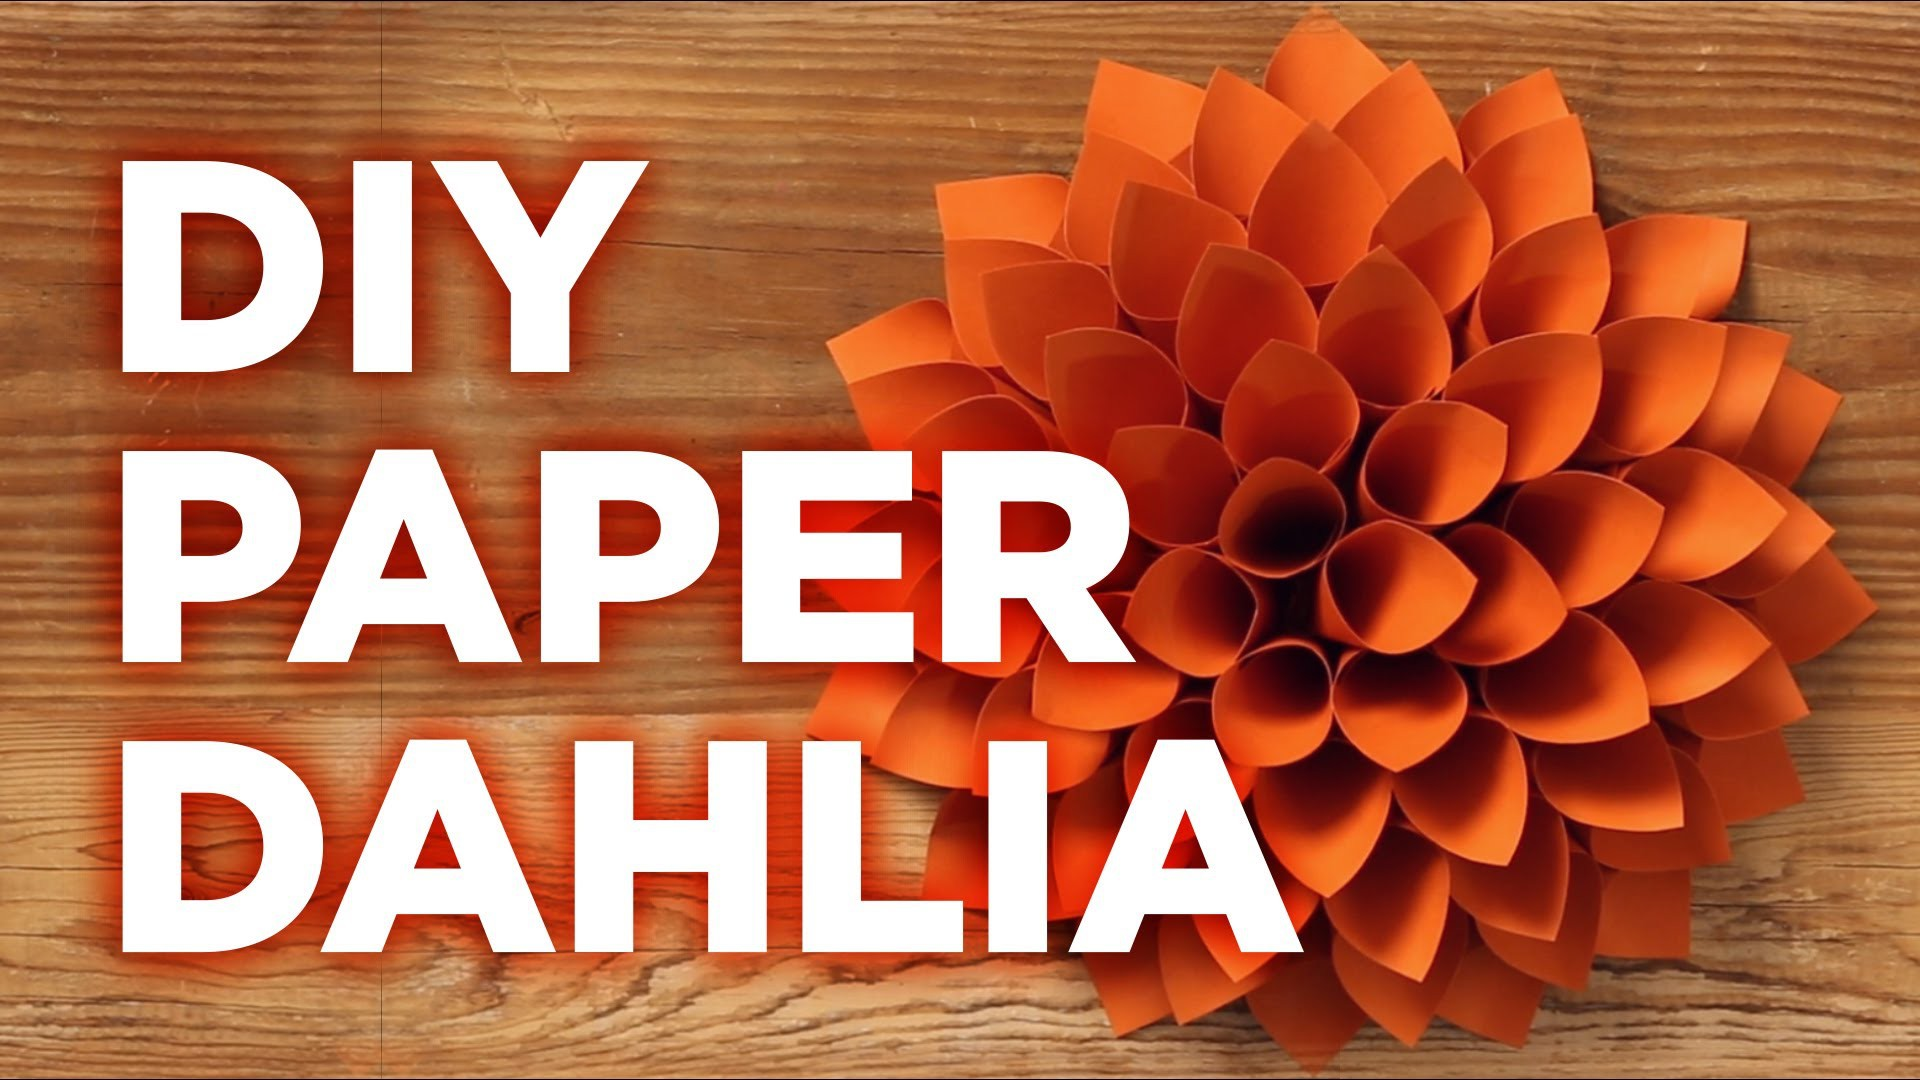 Giant Paper Dahlia: Pinterest Inspired - HGTV - Weekday Crafternoon